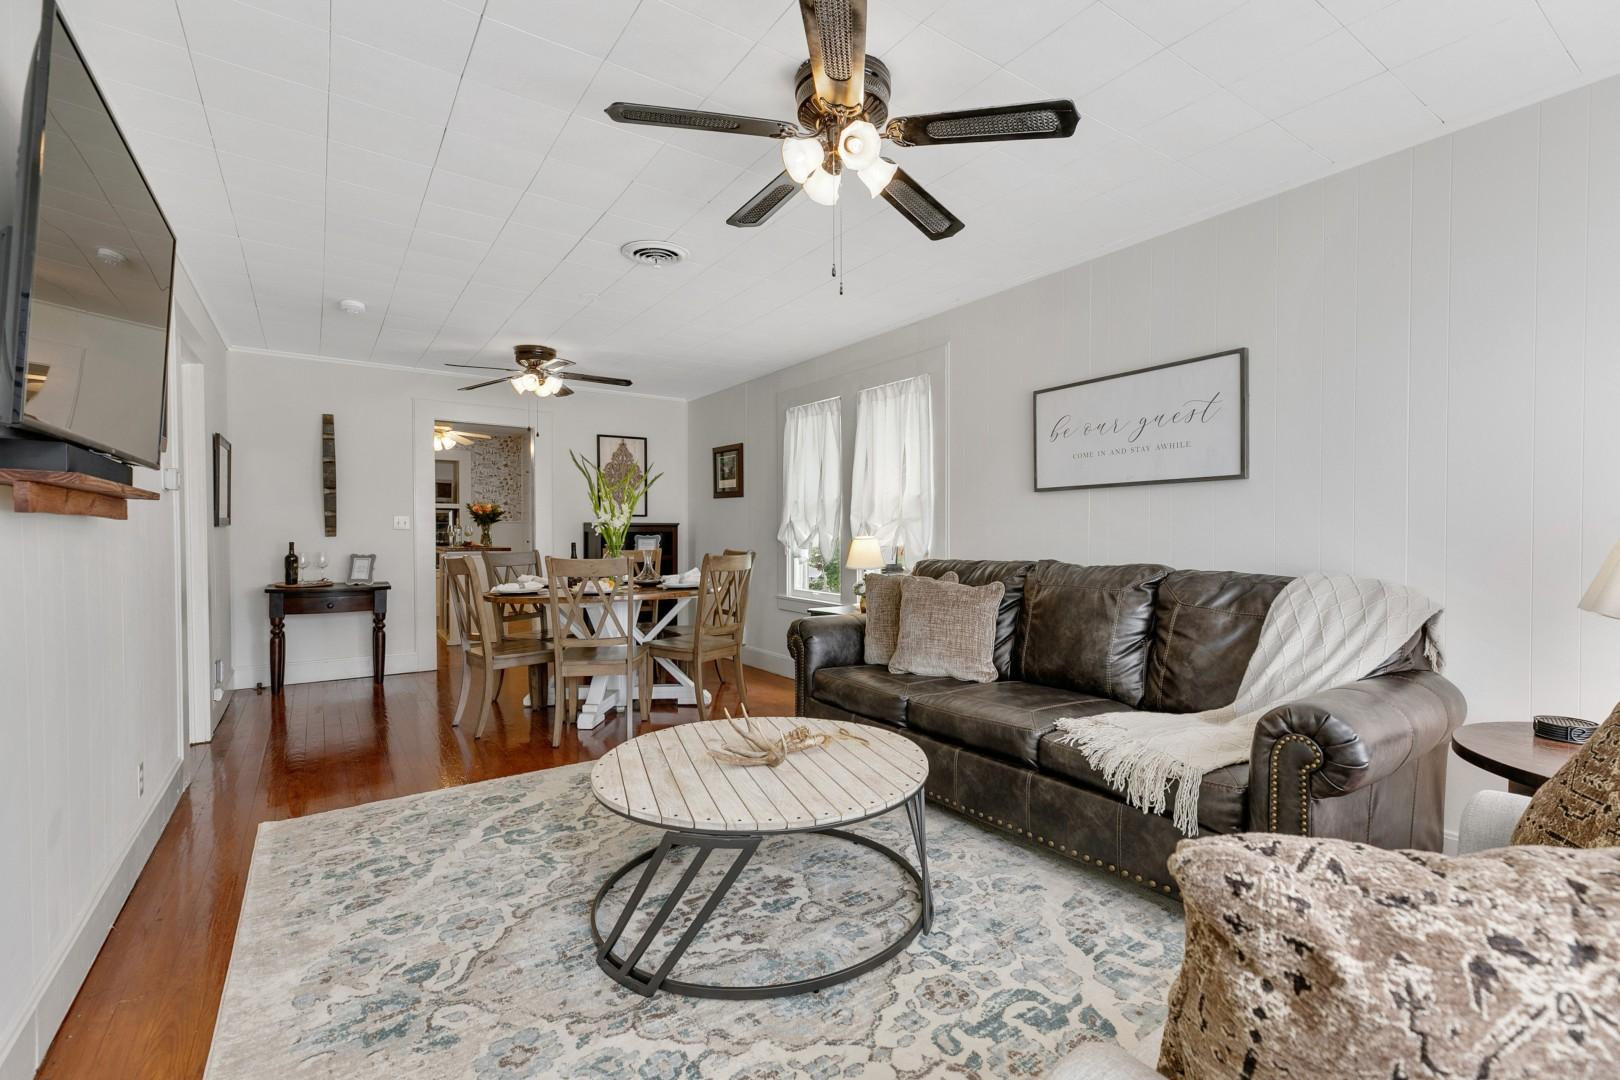 New! Charming Haus Near to Main St!